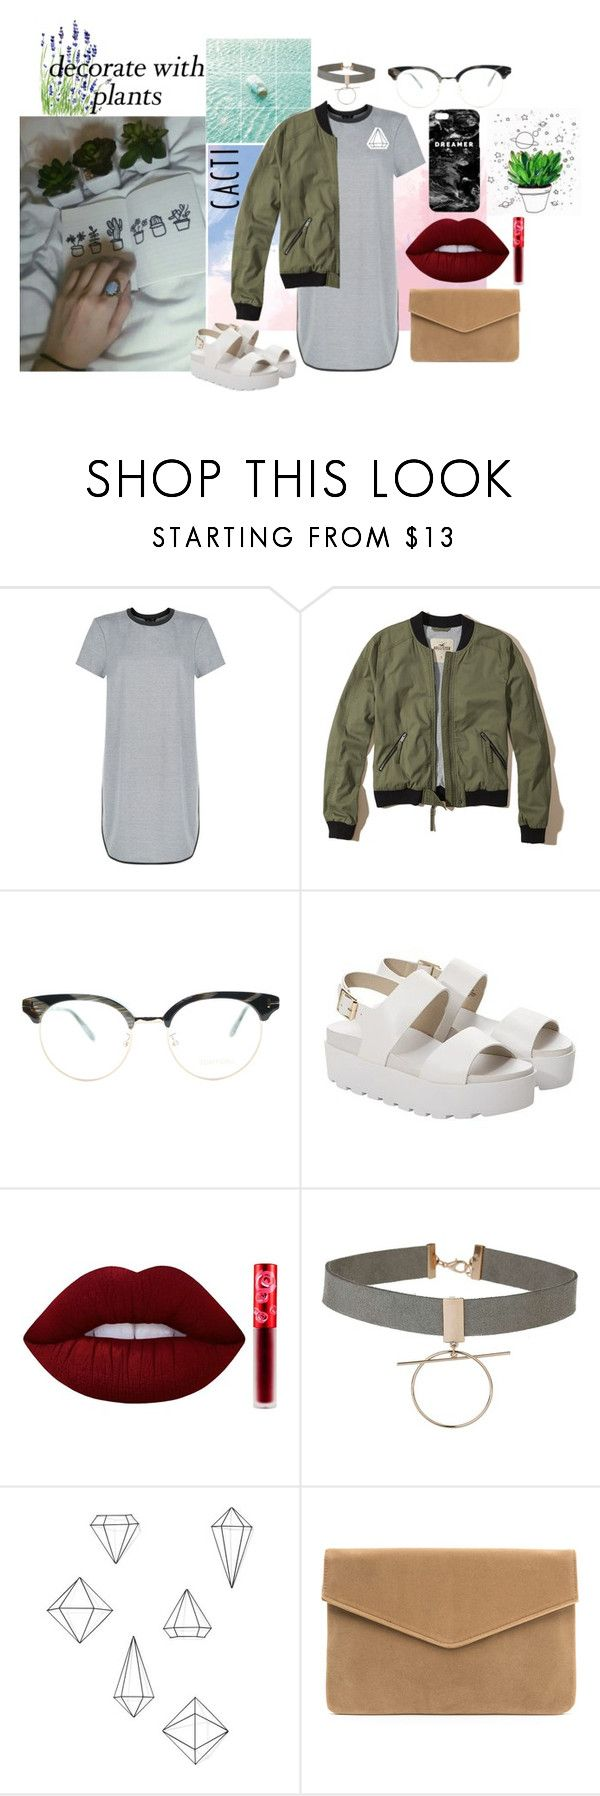 """planters"" by heidehh ❤ liked on Polyvore featuring New Look, Hollister Co., Tom Ford, Windsor Smith, Lime Crime, Miss Selfridge, Umbra, Mr. Gugu & Miss Go, plants and planters"